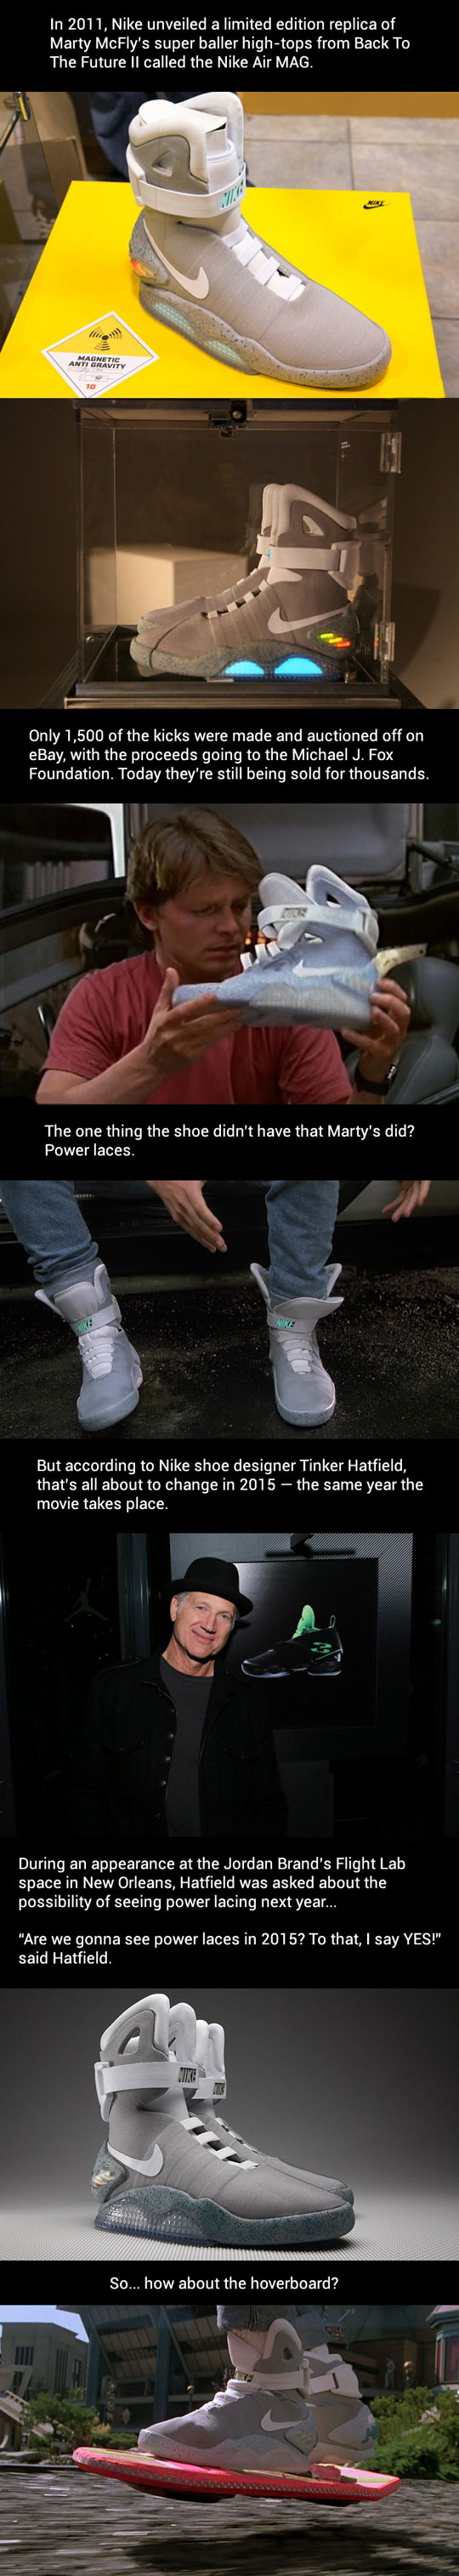 Back To The Future Power Laces For 2015…